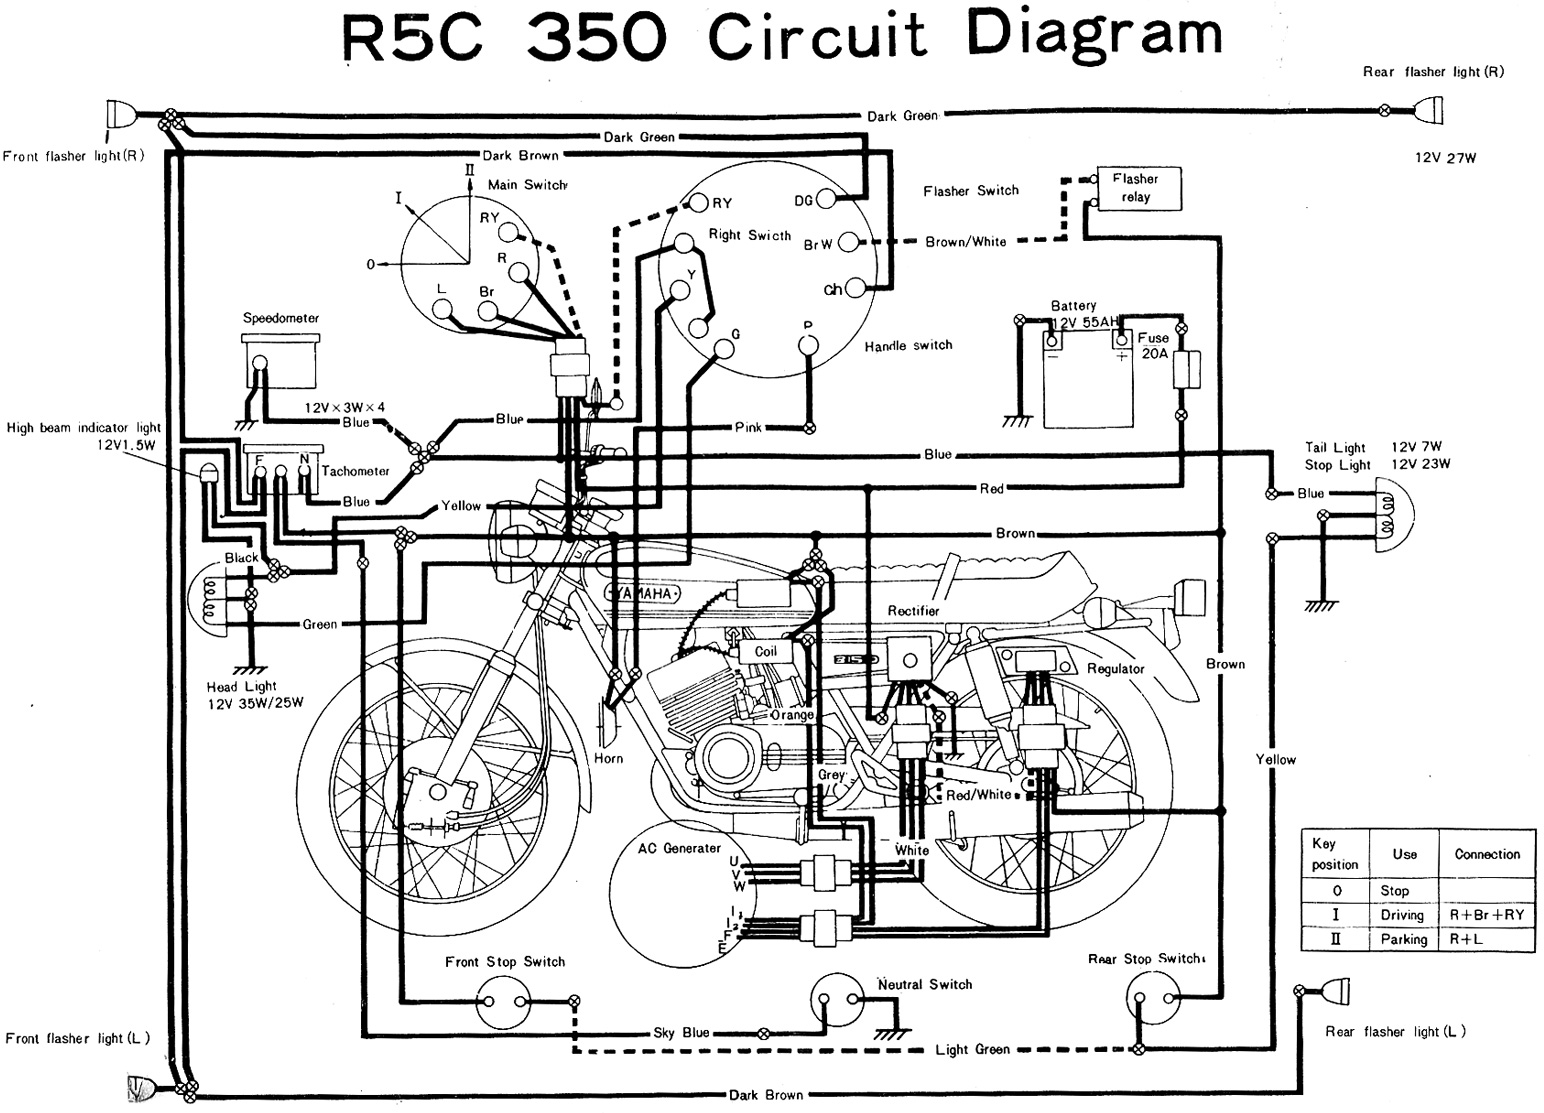 Yamaha RD350 R5C Wiring Diagram motorcycle wiring diagrams evan fell motorcycle worksevan fell Basic Motorcycle Diagram at love-stories.co